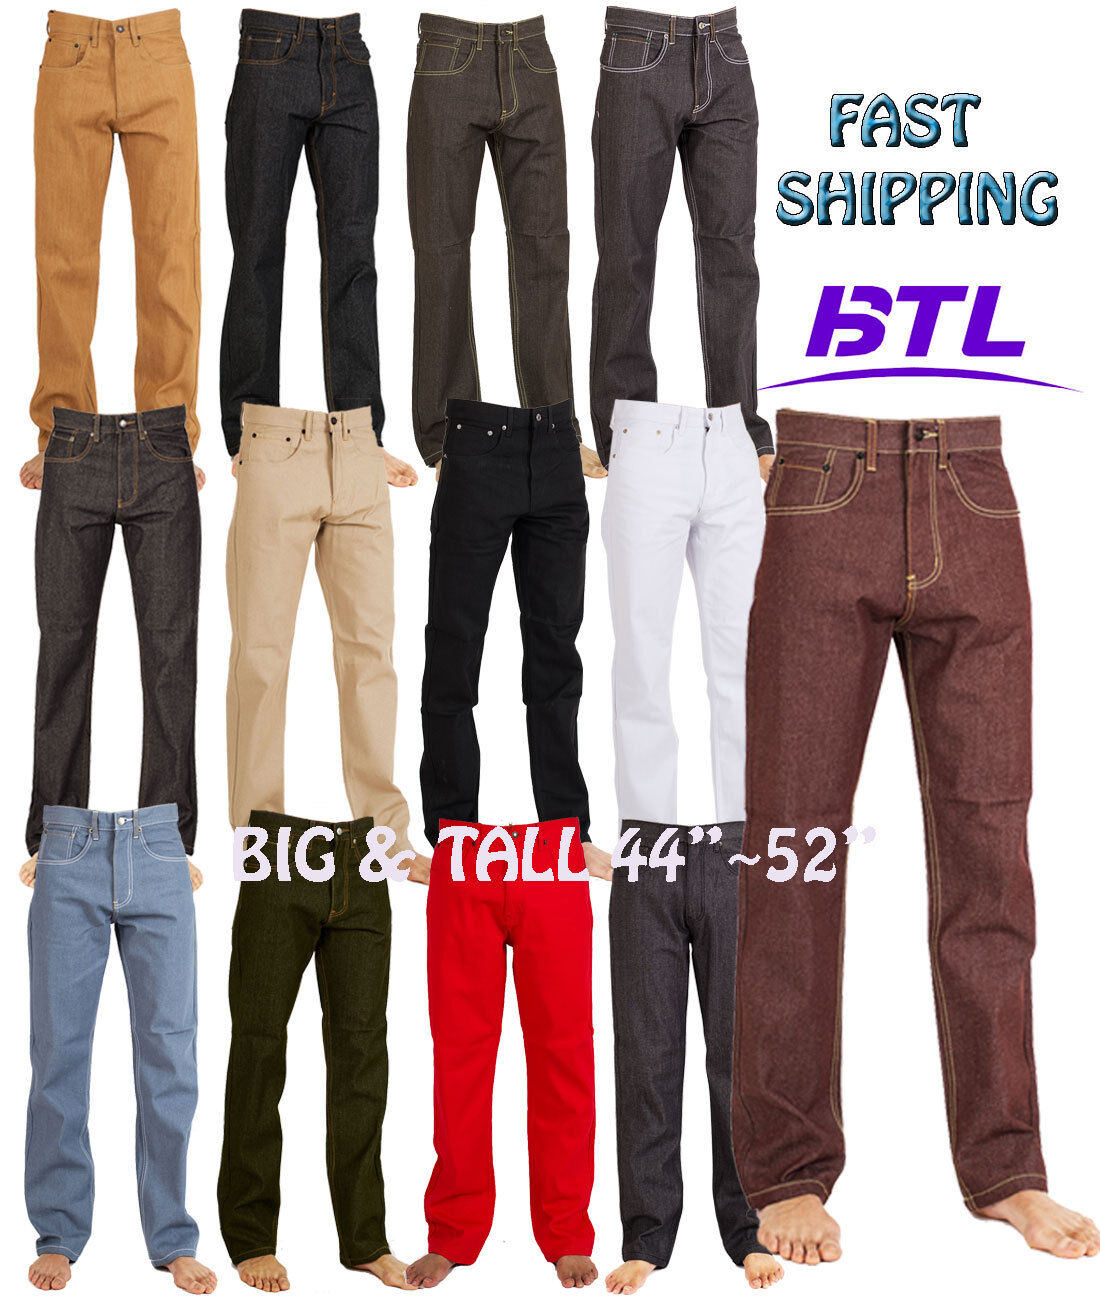 MEN JEANS BIG AND TALL RAW DENIM RELAXED FIT PANTS